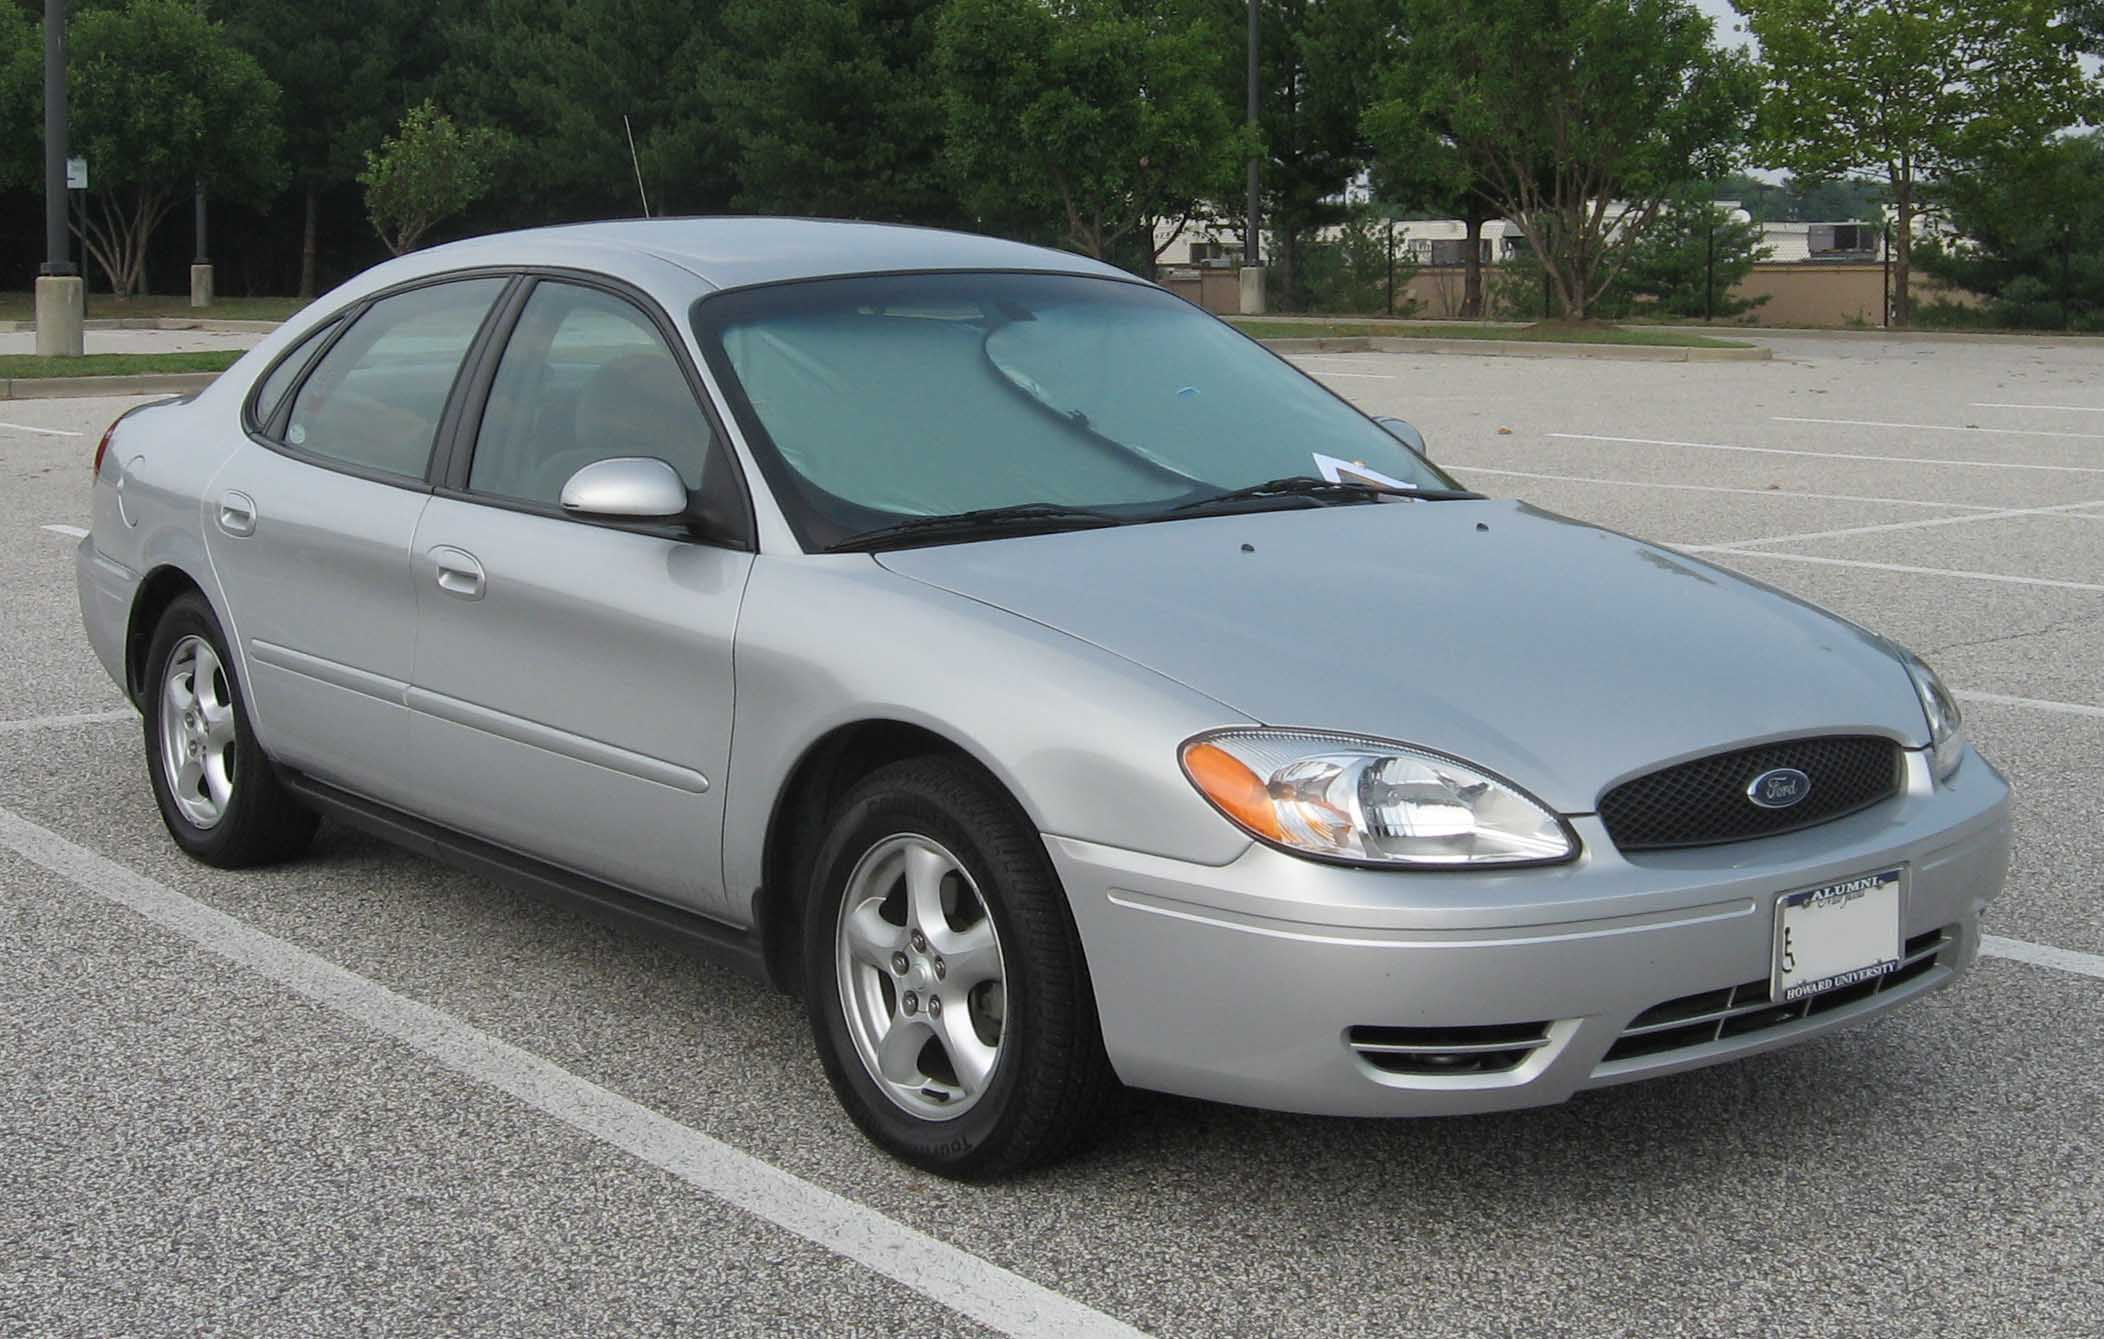 Ford Taurus (fourth generation) - Wikipedia